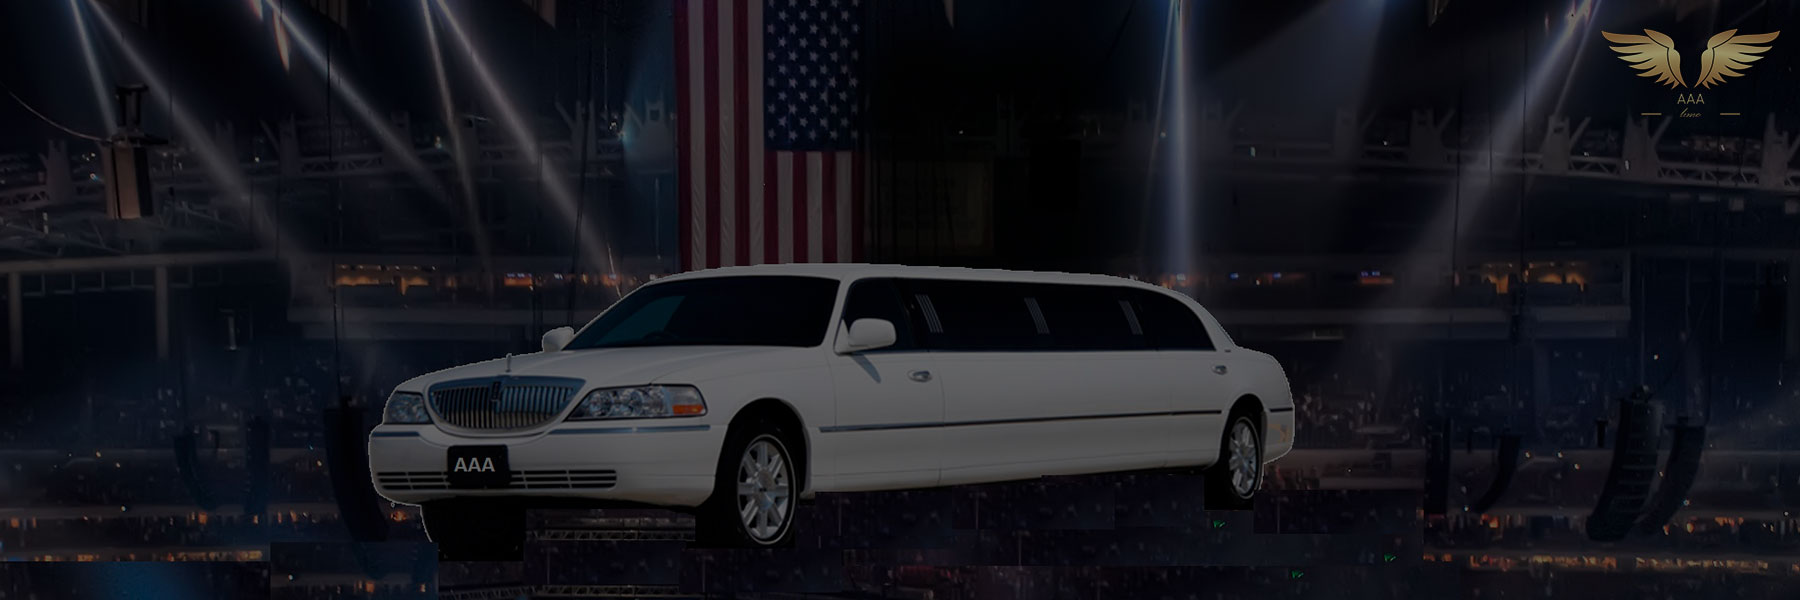 Car Service To Dfw: Dallas & Plano Limo Service